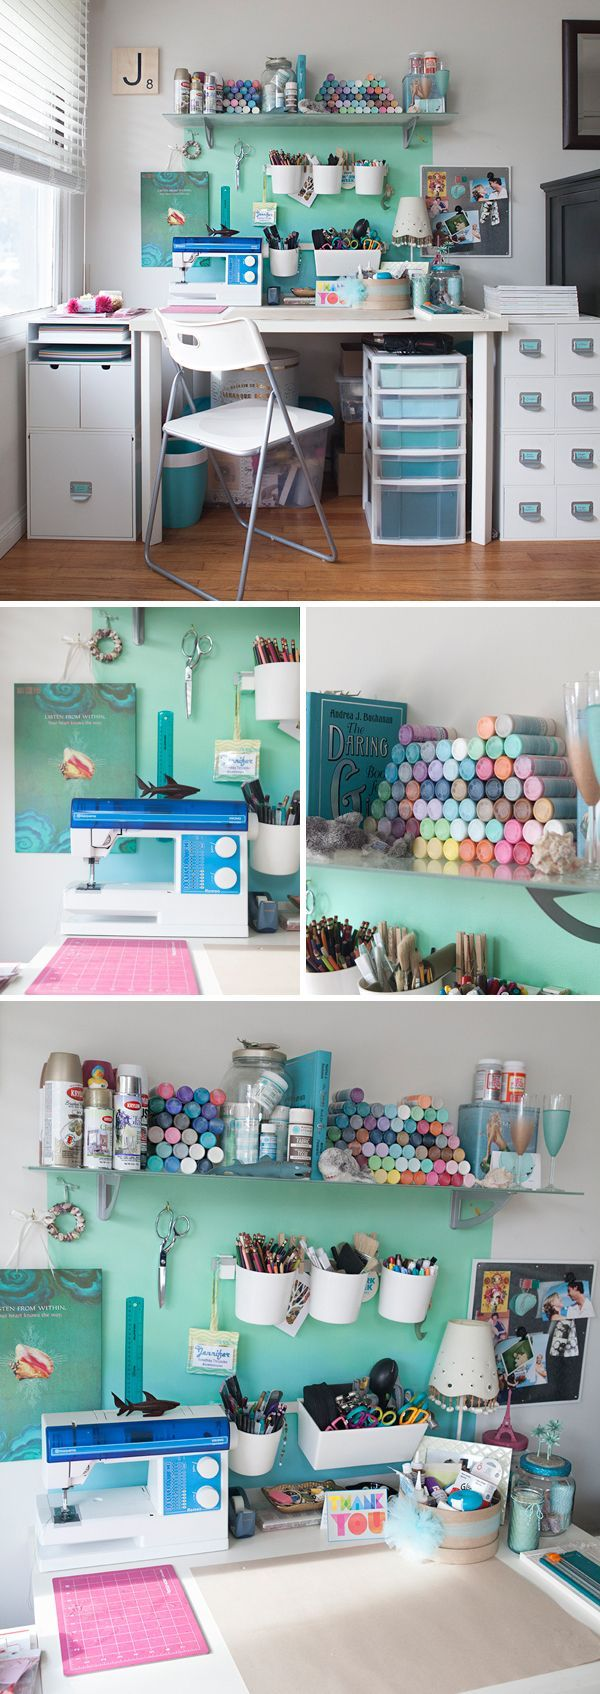 This is what crafting looks like in my house ~ Jen of SomethingTurquoise.com: